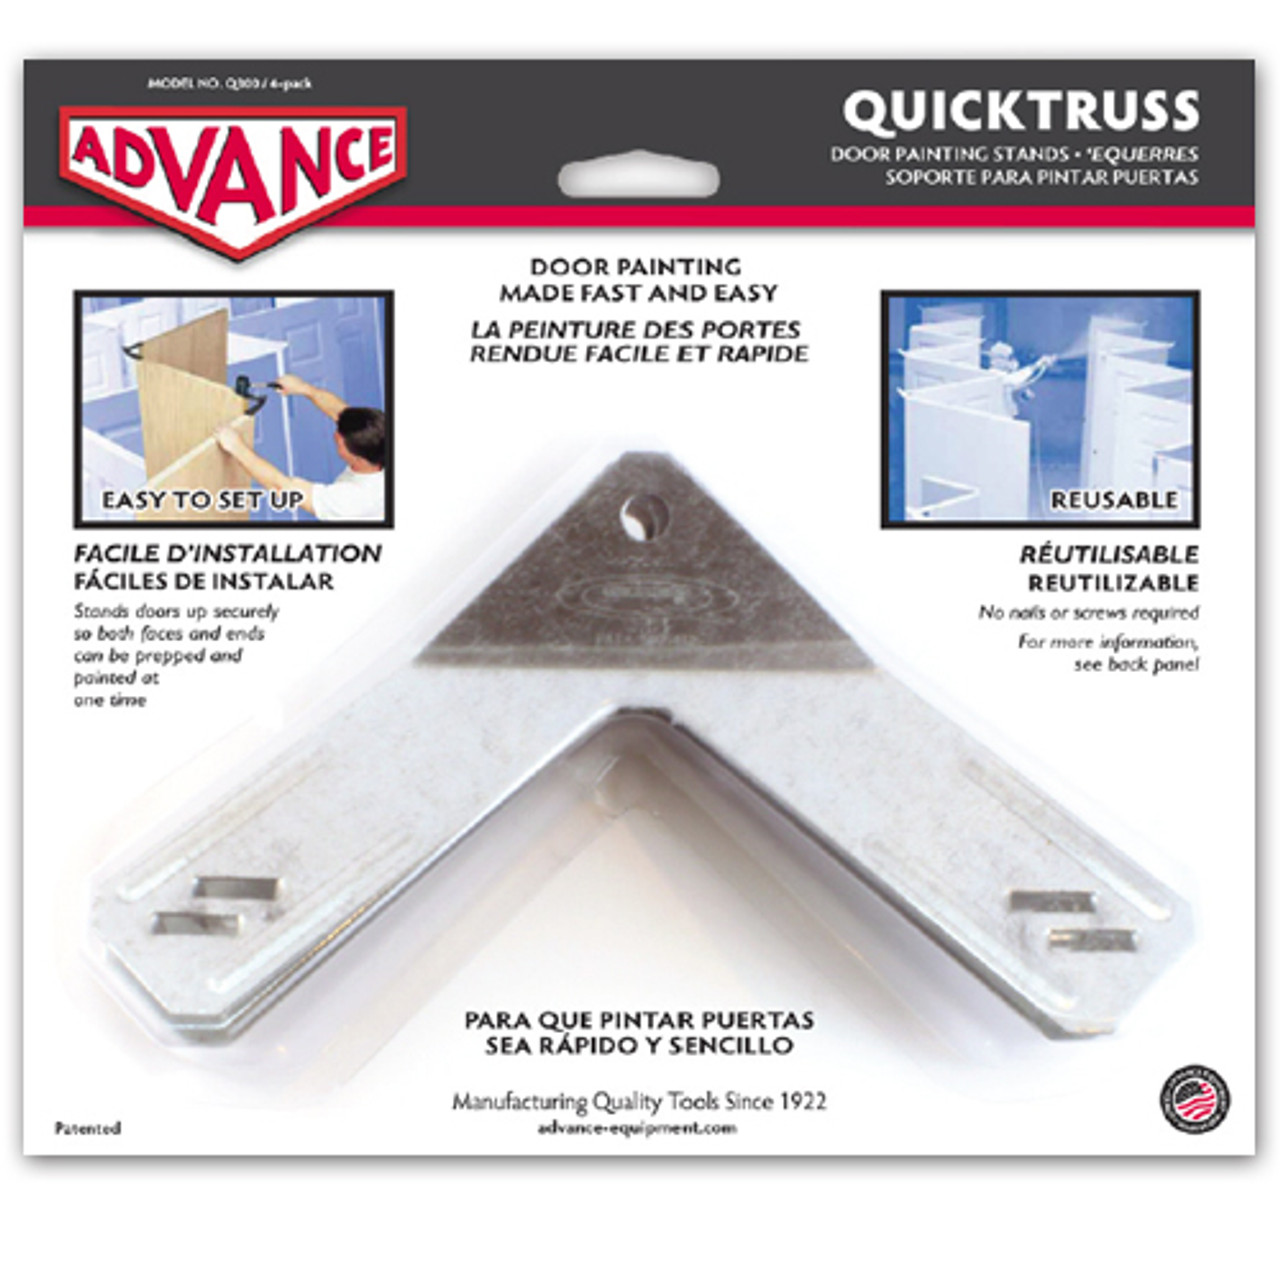 Advance Quicktruss Door Painting Stands